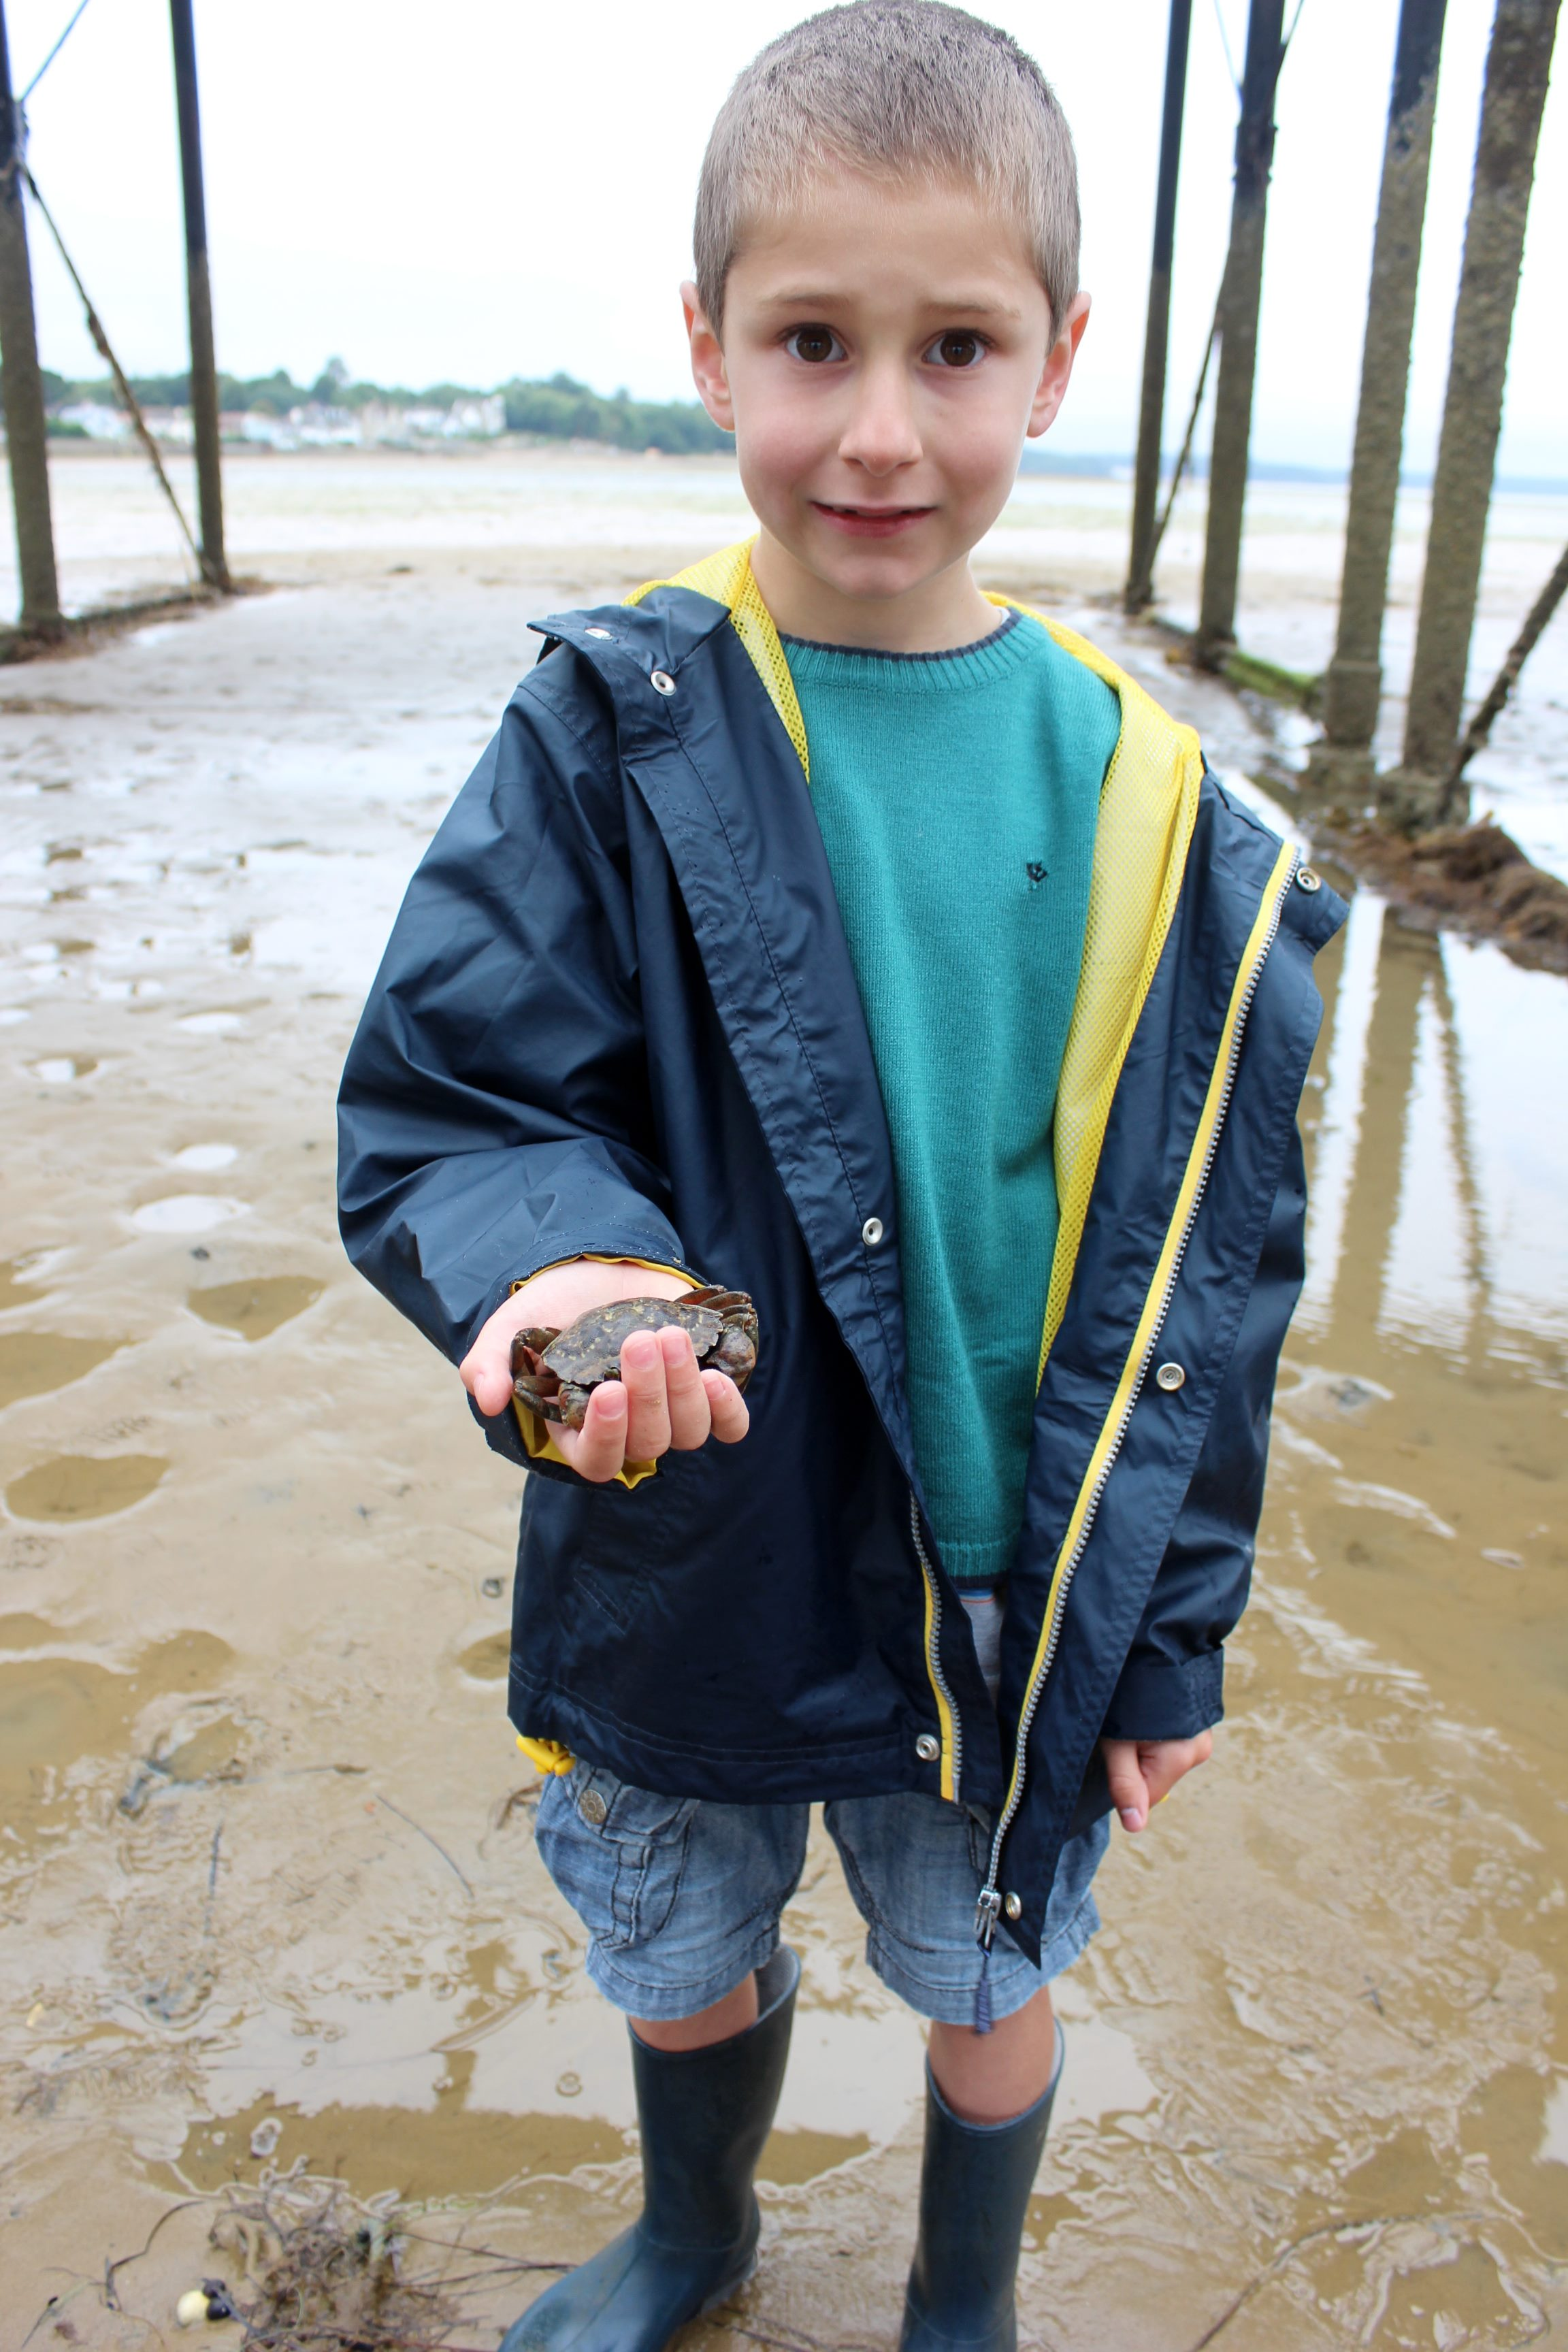 Alfie rescues a crab from marine litter & fishing line